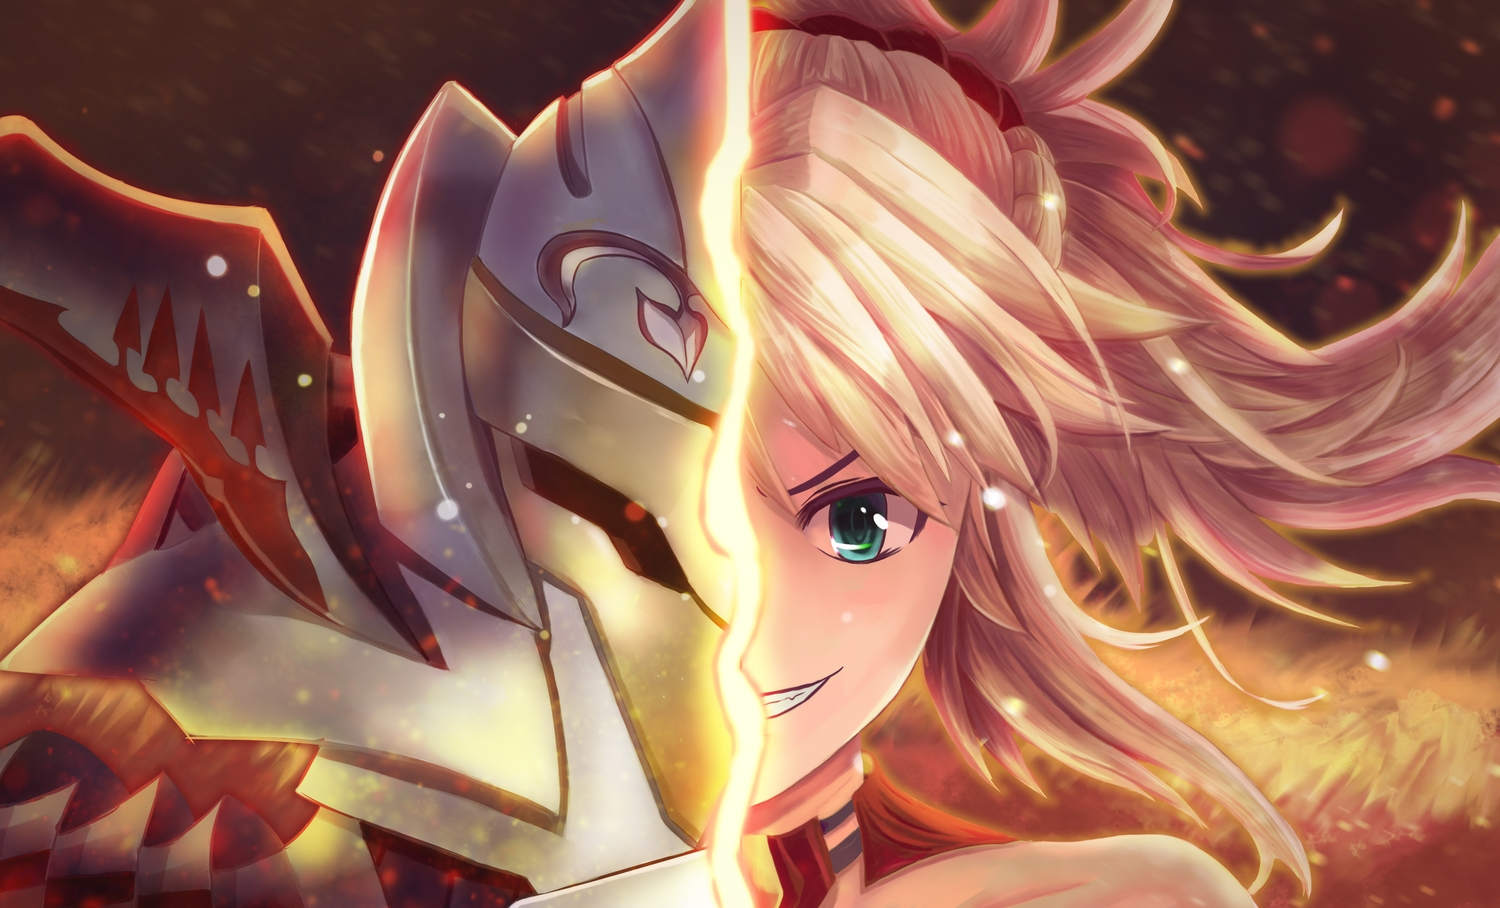 armor blonde_hair close fate/apocrypha fate/grand_order fate_(series) green_eyes long_hair mordred ponytail red_eyes synn032